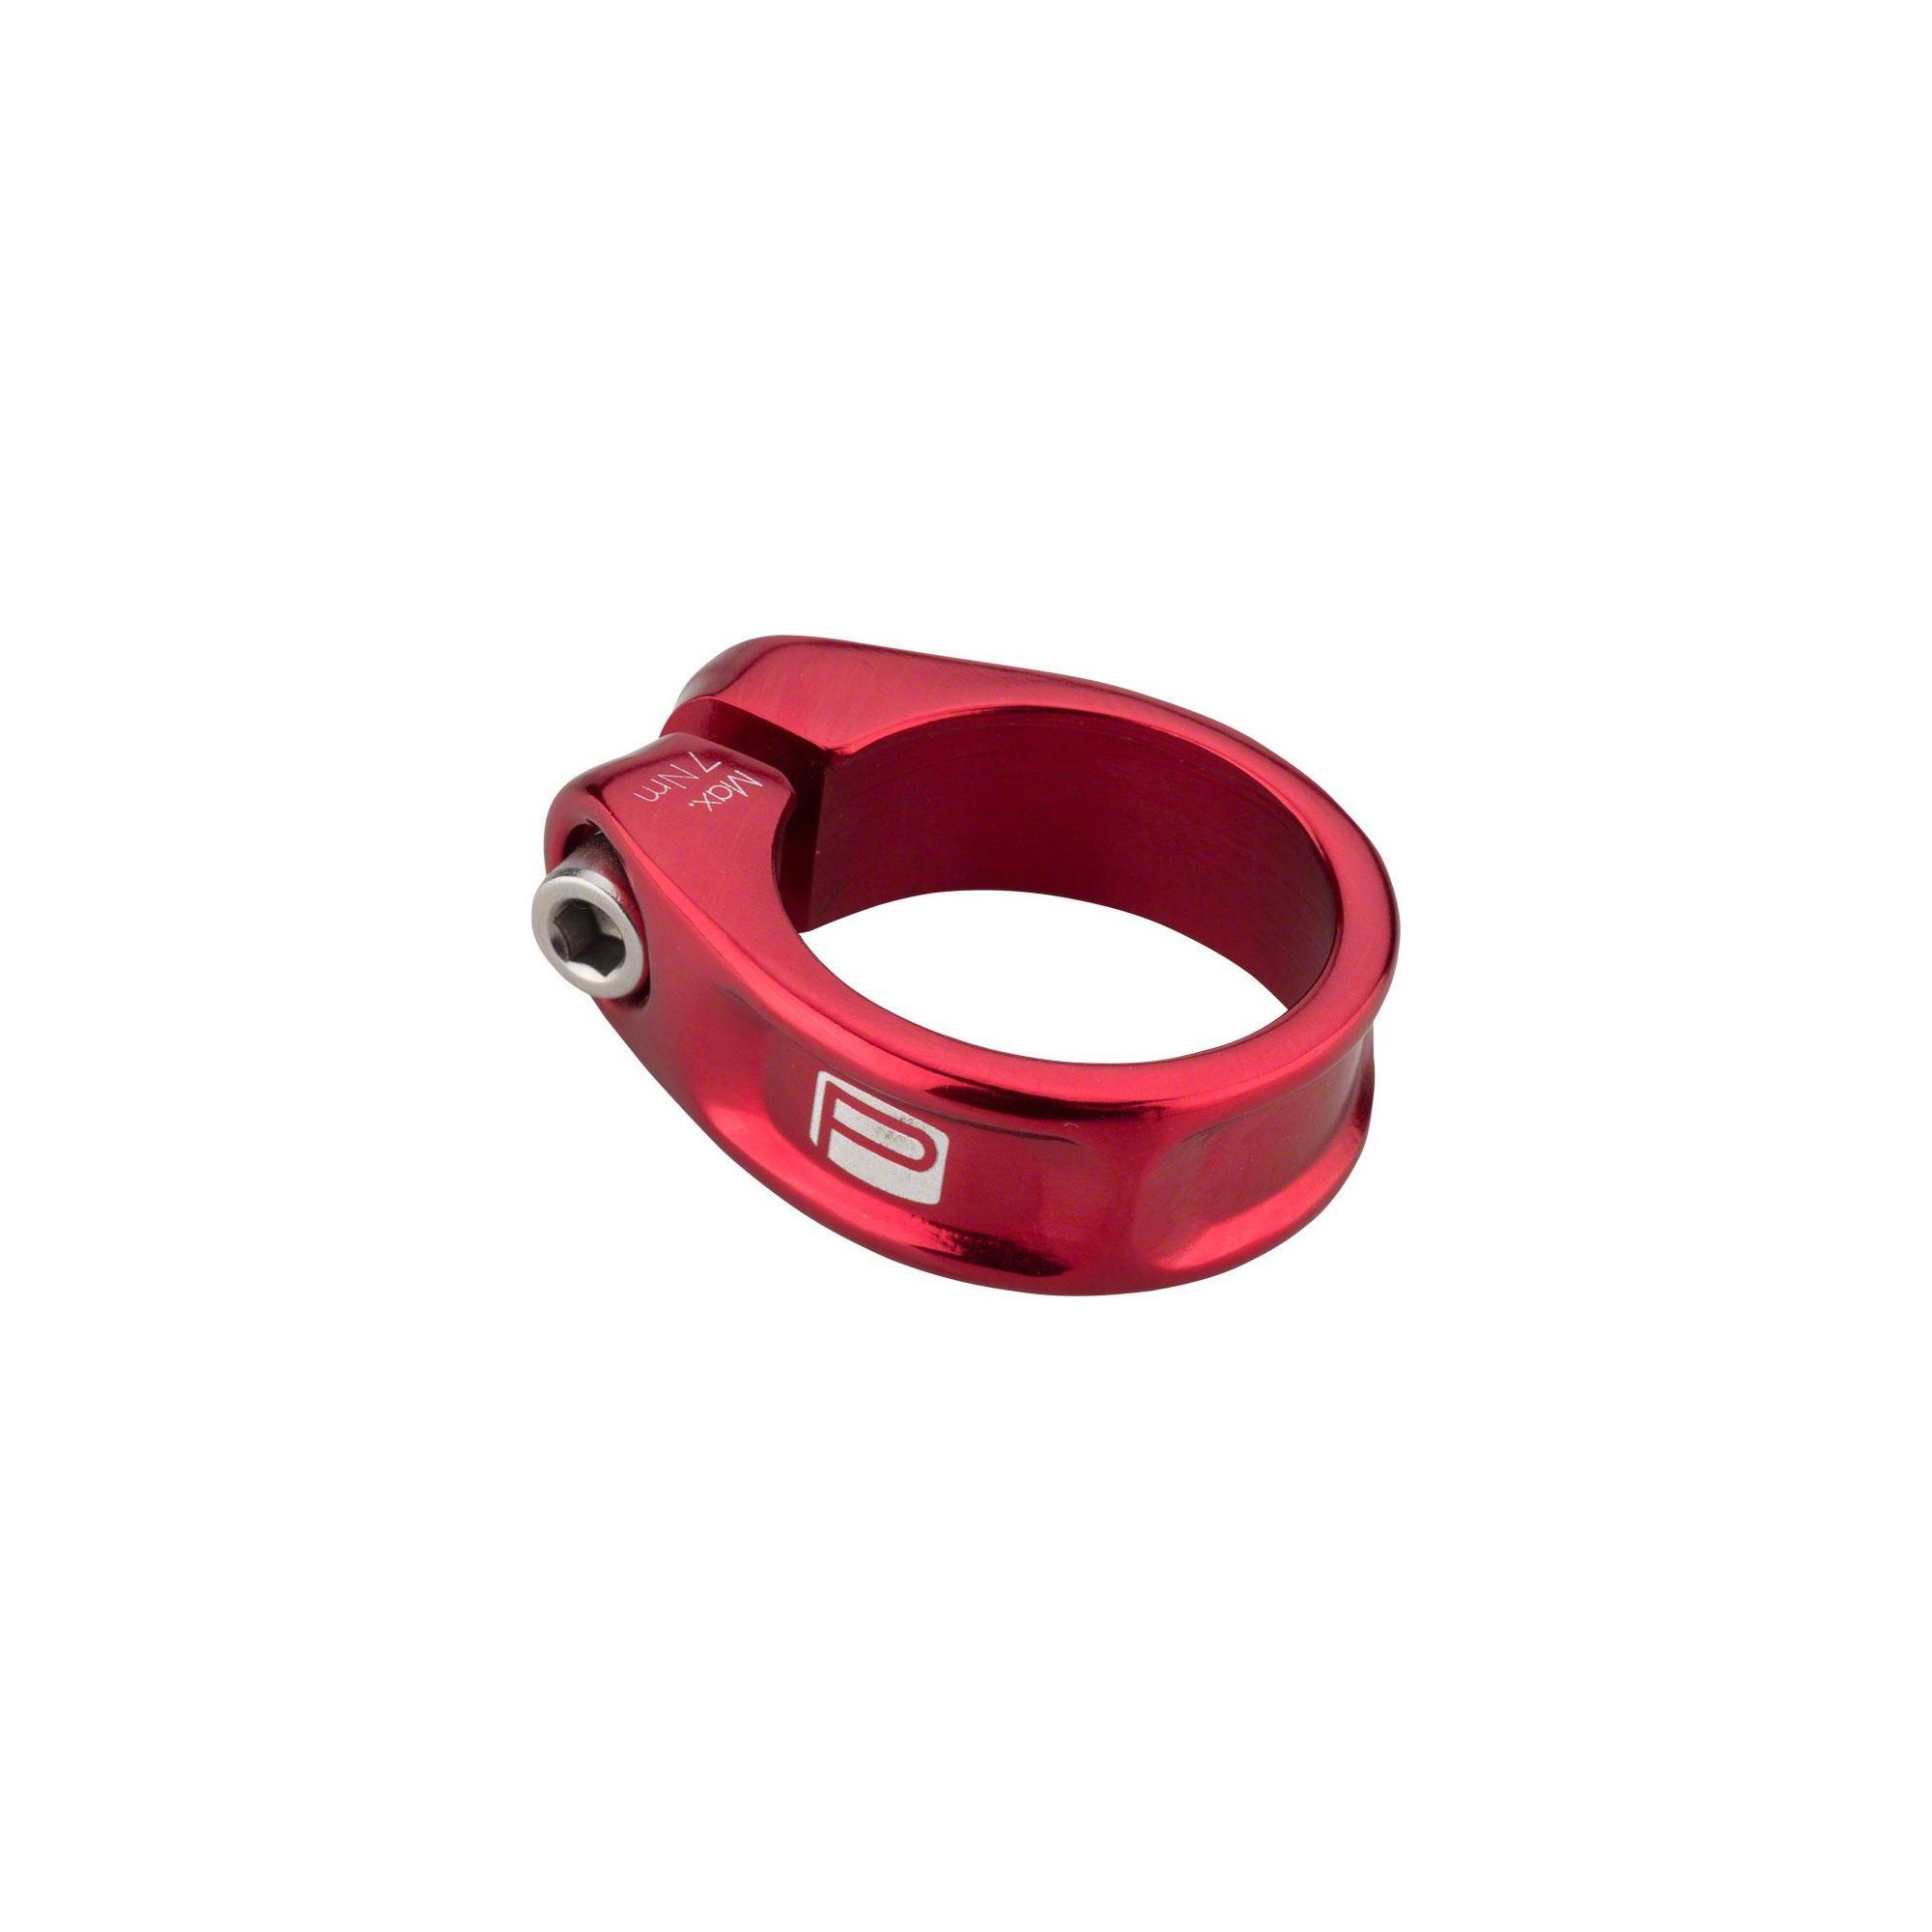 Cycle Group PX-SC130F318-RD Promax FC-1 Fixed Seatpost Clamp, Red by Cycle Group